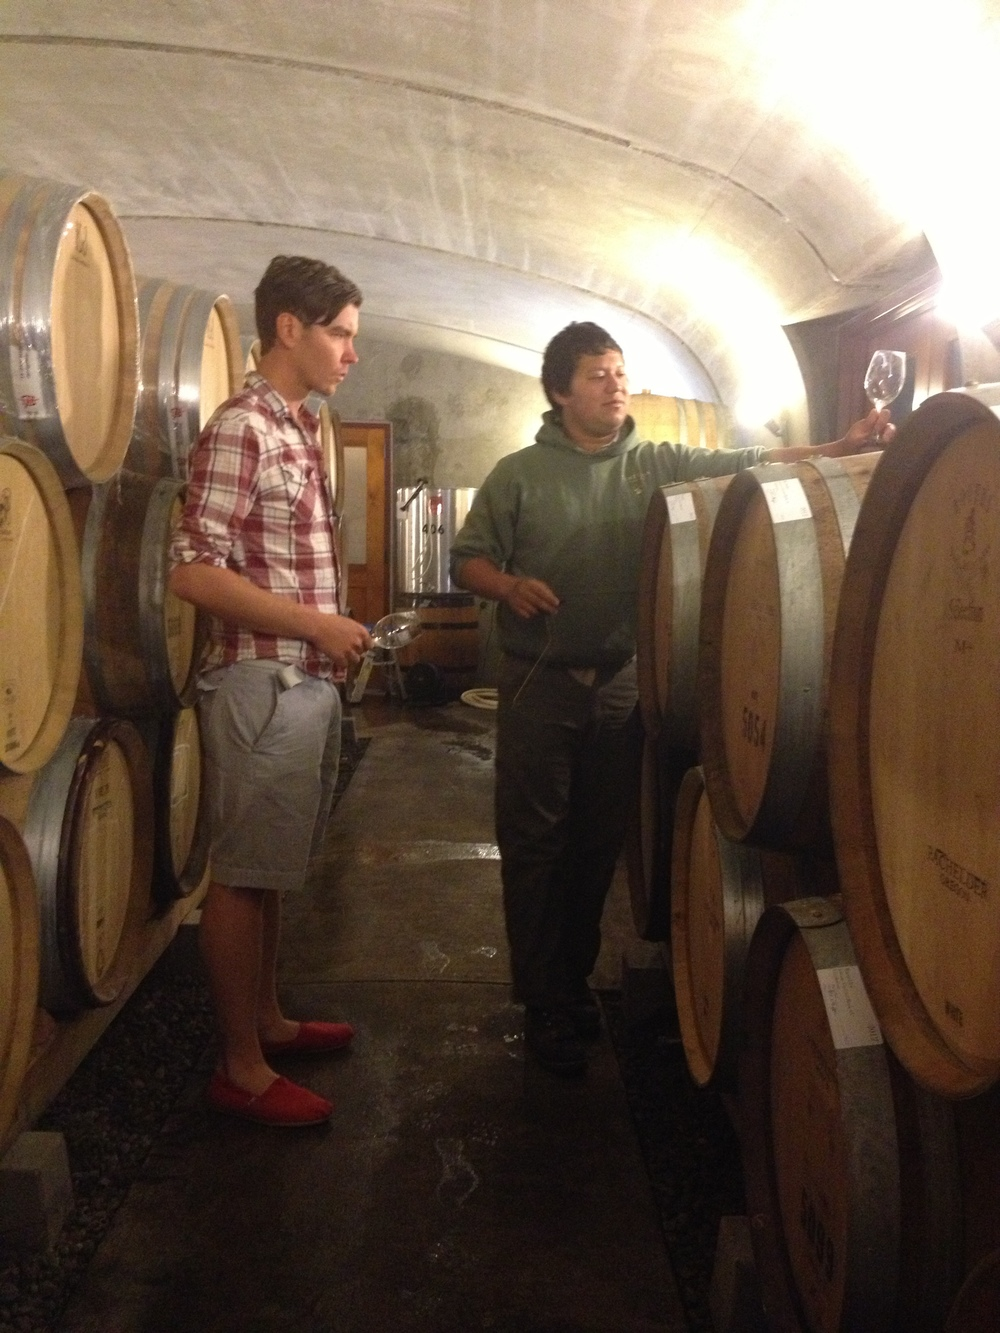 Tasting Thomas Bachelder's Oregon Chardonnays in barrel at Lemelson with cellarmaster David Martinez.